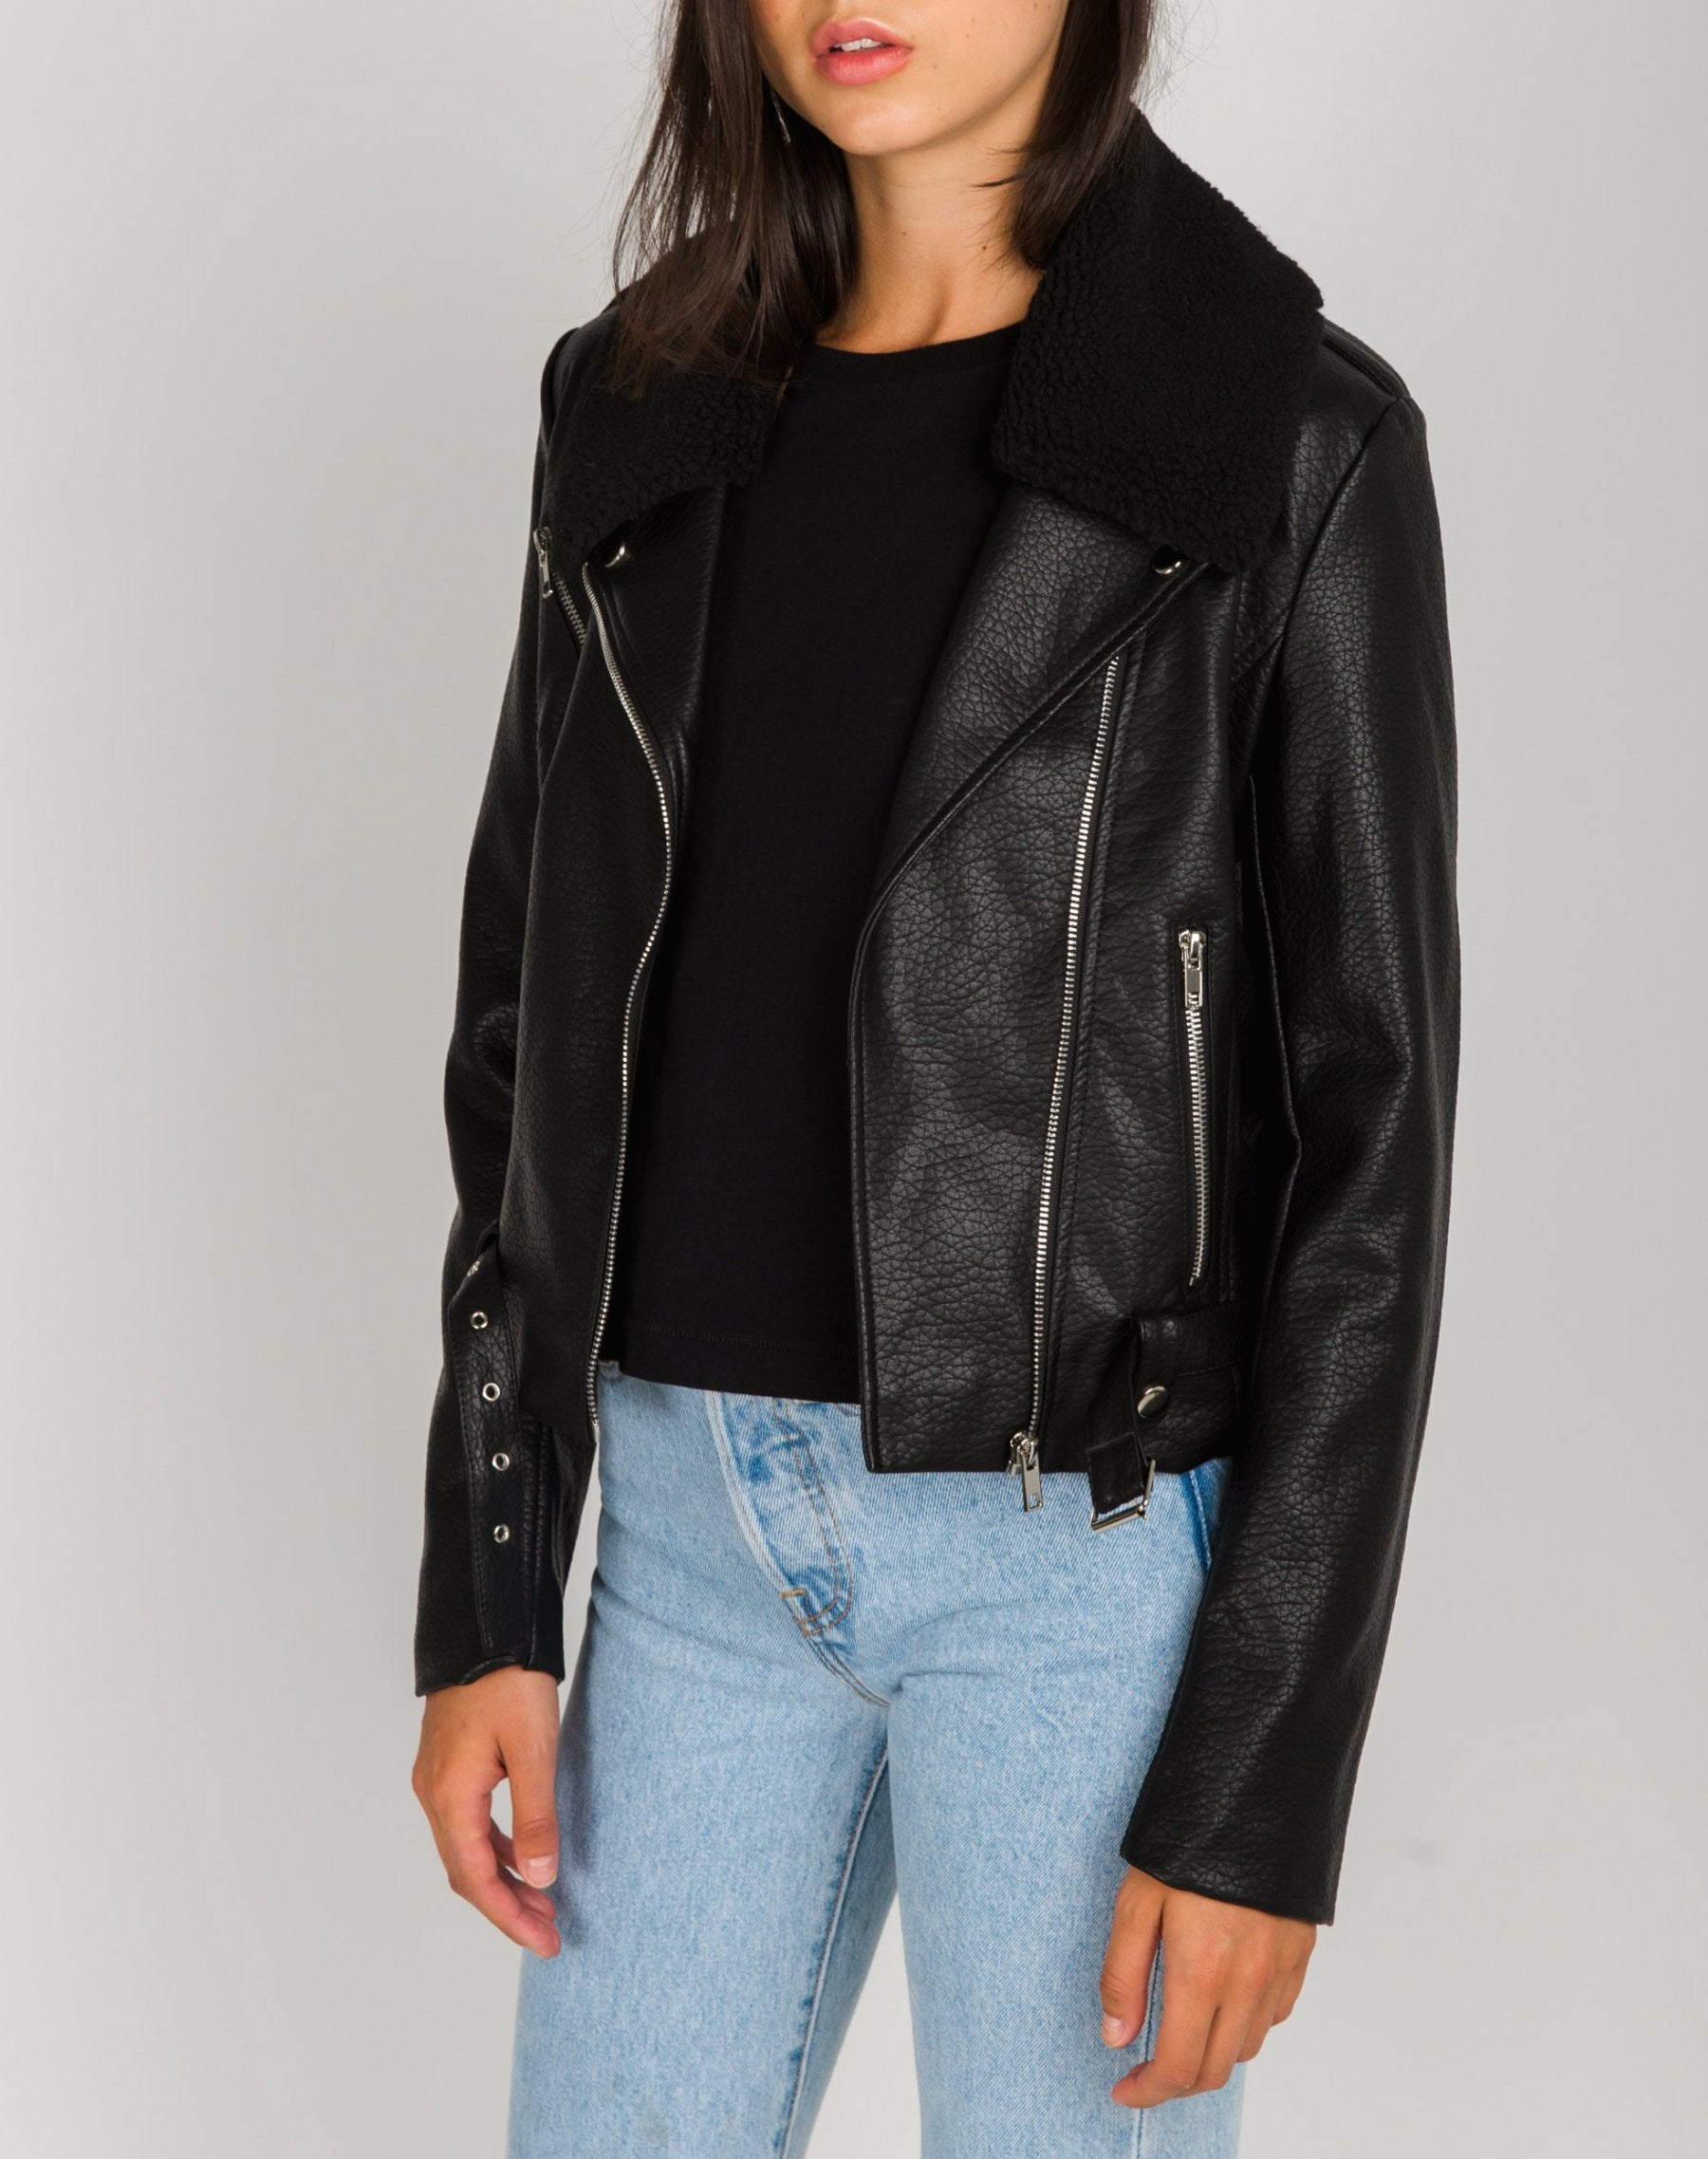 Photo 2 of the Blonde Florence vegan leather moto jacket in black by Brunette the Label.